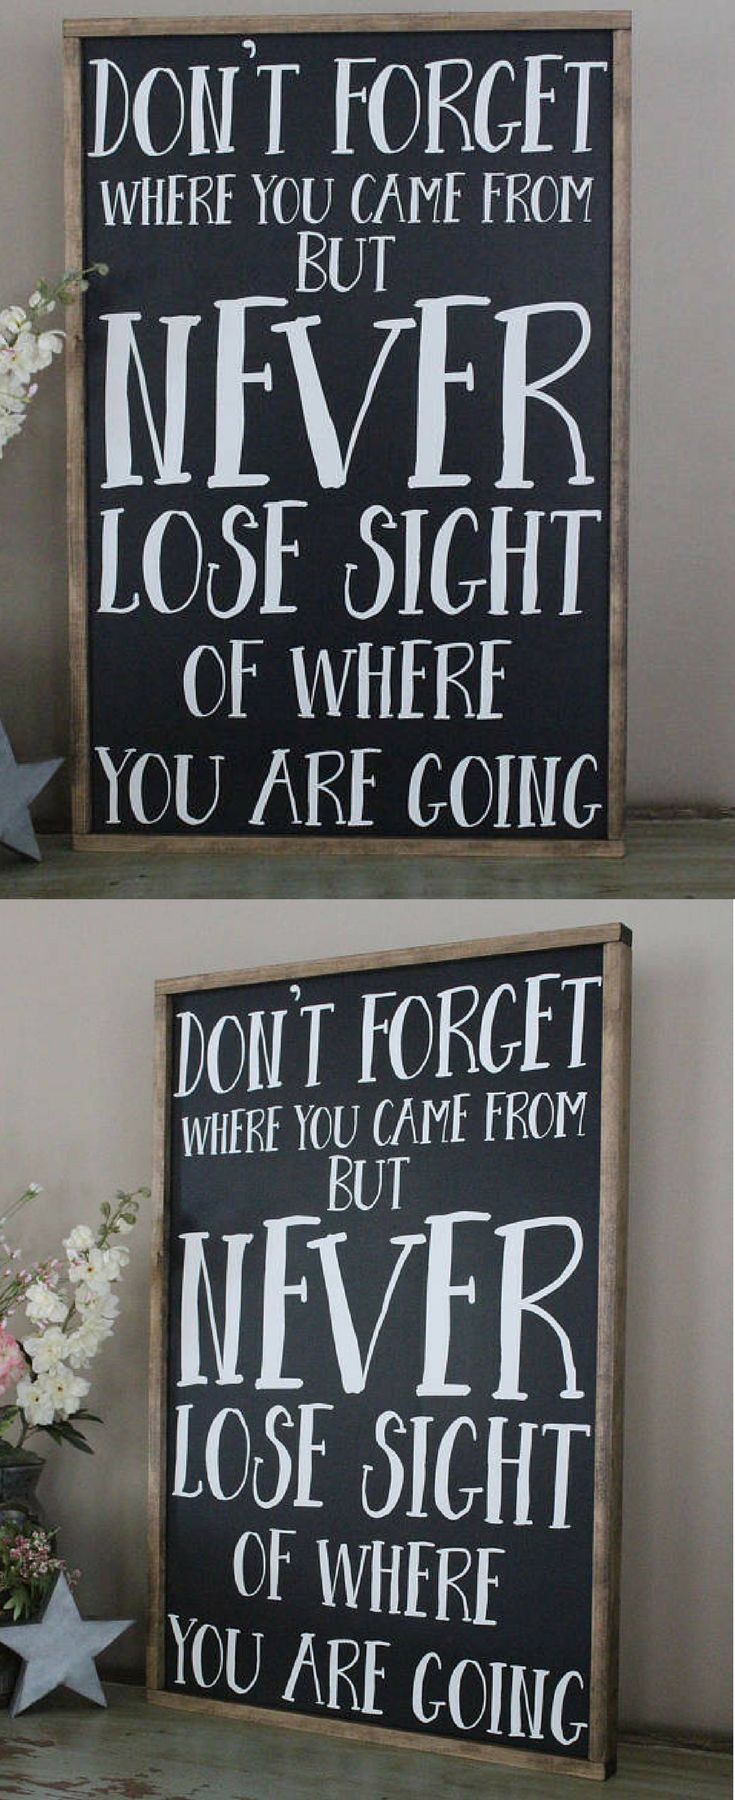 So true - something we all need to remember!  Would be great for a gift! Don't Forget Where You Came From But Never Lose Sight of Where You Are Going Framed Wood Sign, Inspirational sign, Farmhouse sign, Farmhouse decor, Rustic decor, Rustic sign, gift idea #ad